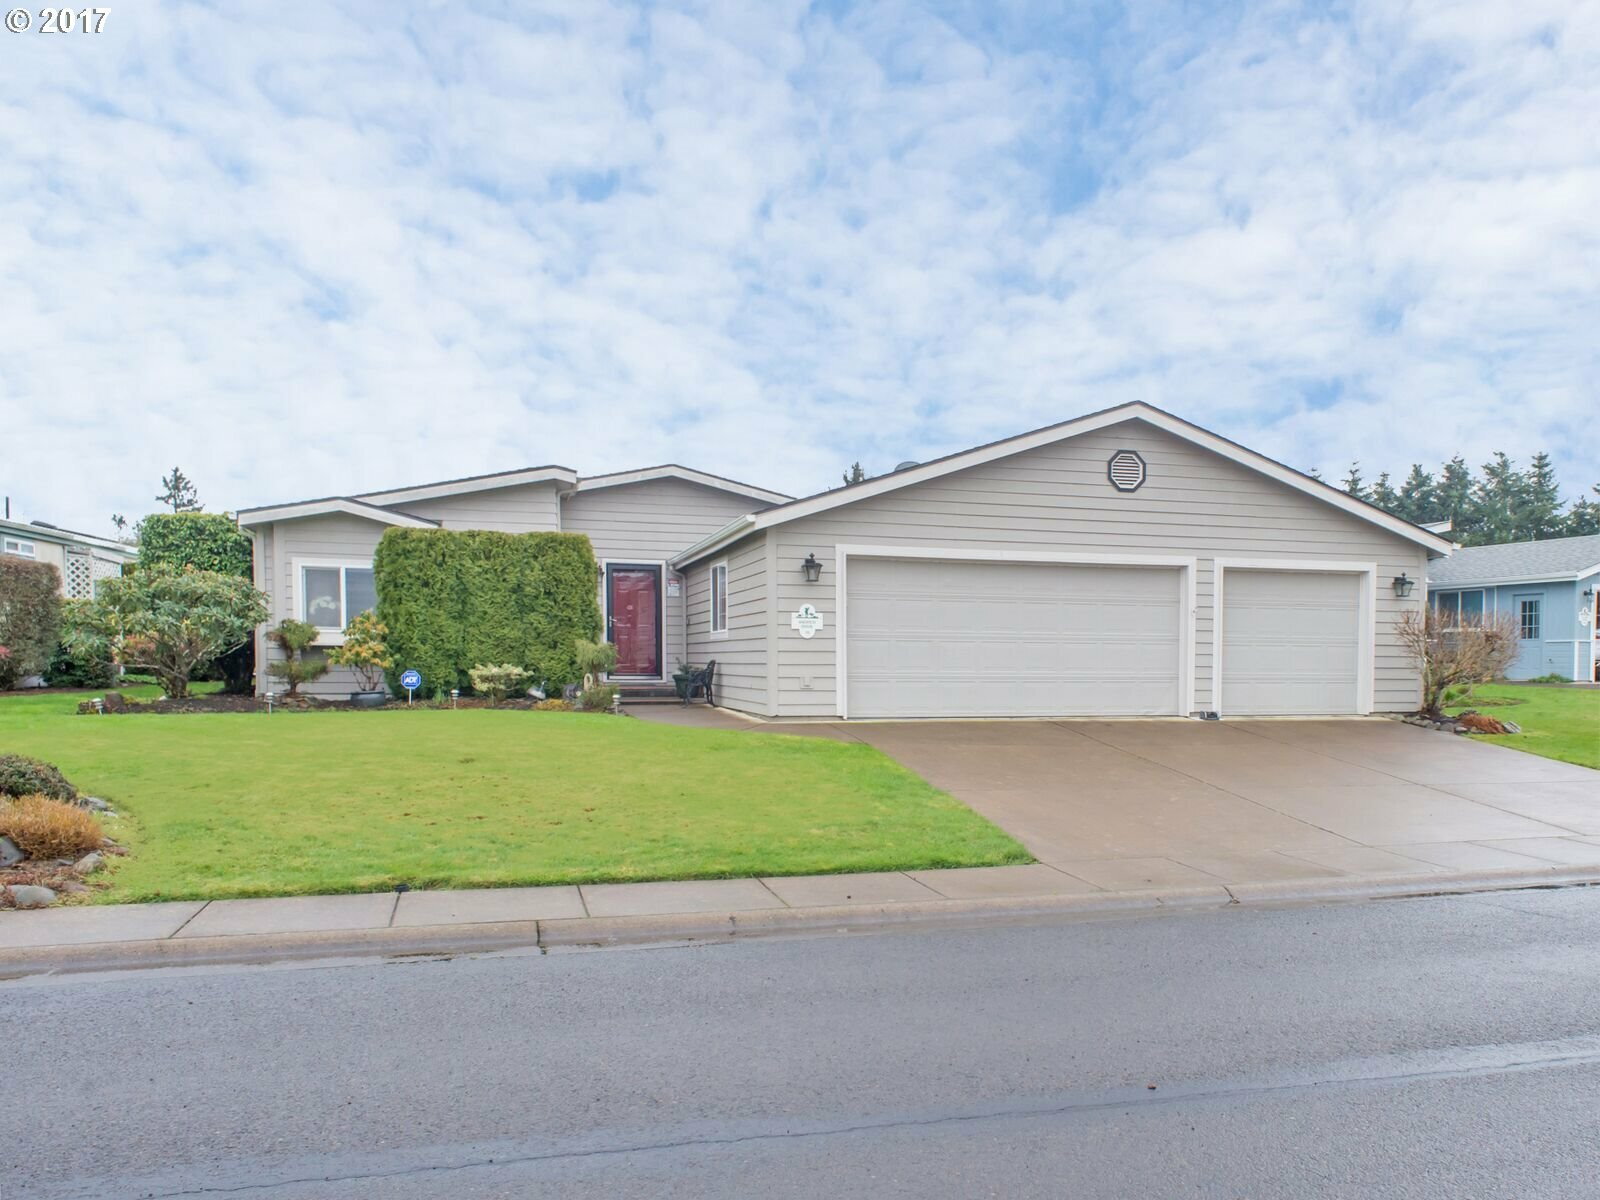 111 Andrew Dr, Cottage Grove, OR - USA (photo 1)